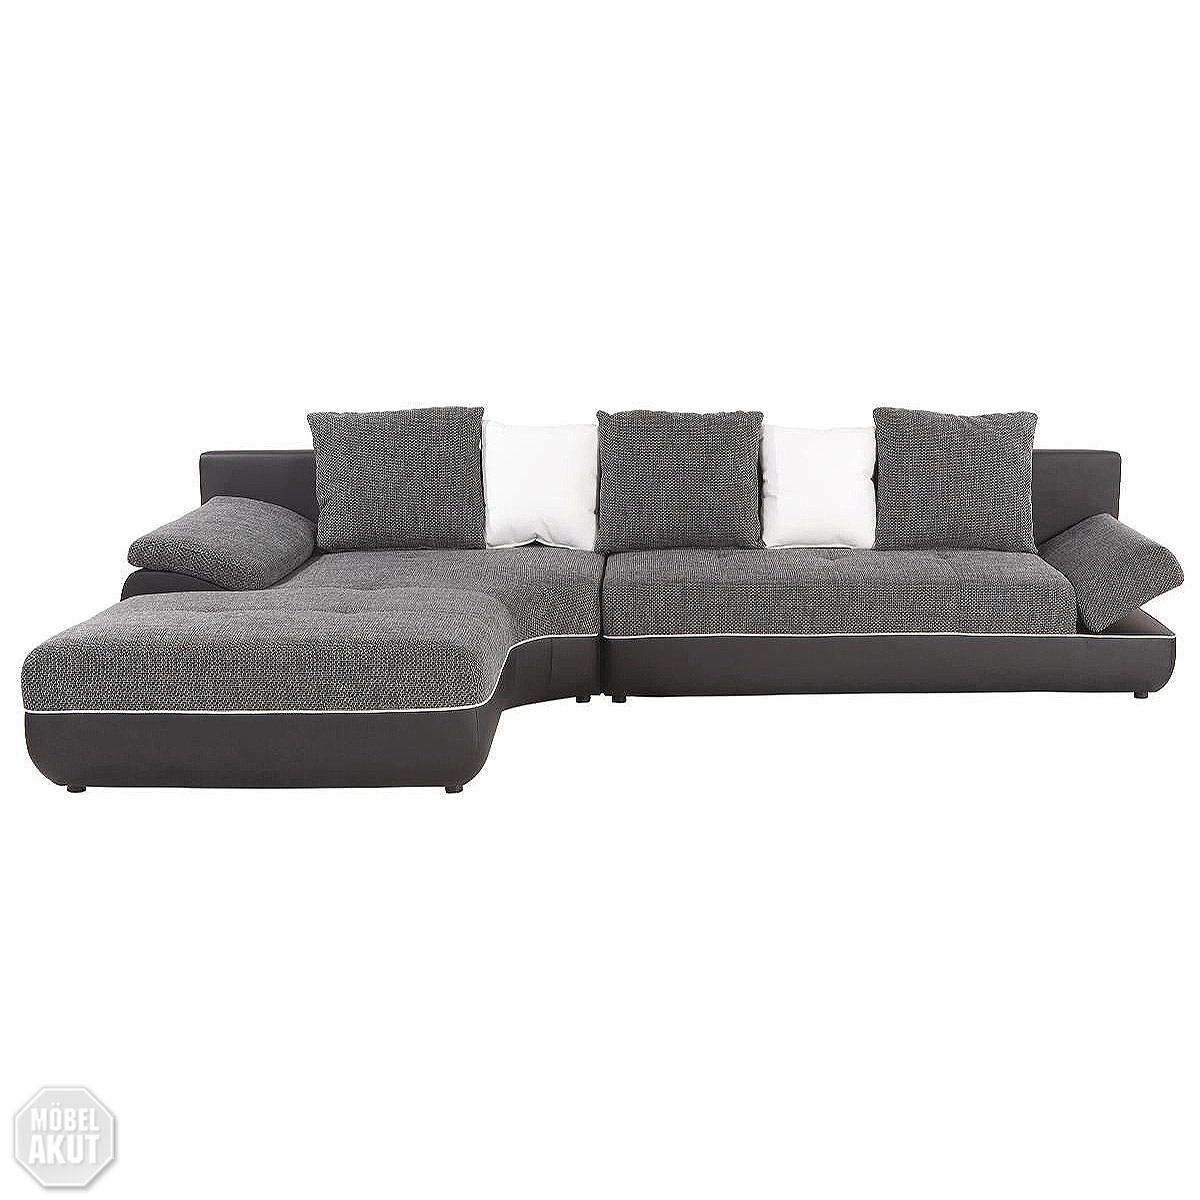 wohnlandschaft konga sofa eck sofa in grau creme inkl kissen neu ebay. Black Bedroom Furniture Sets. Home Design Ideas